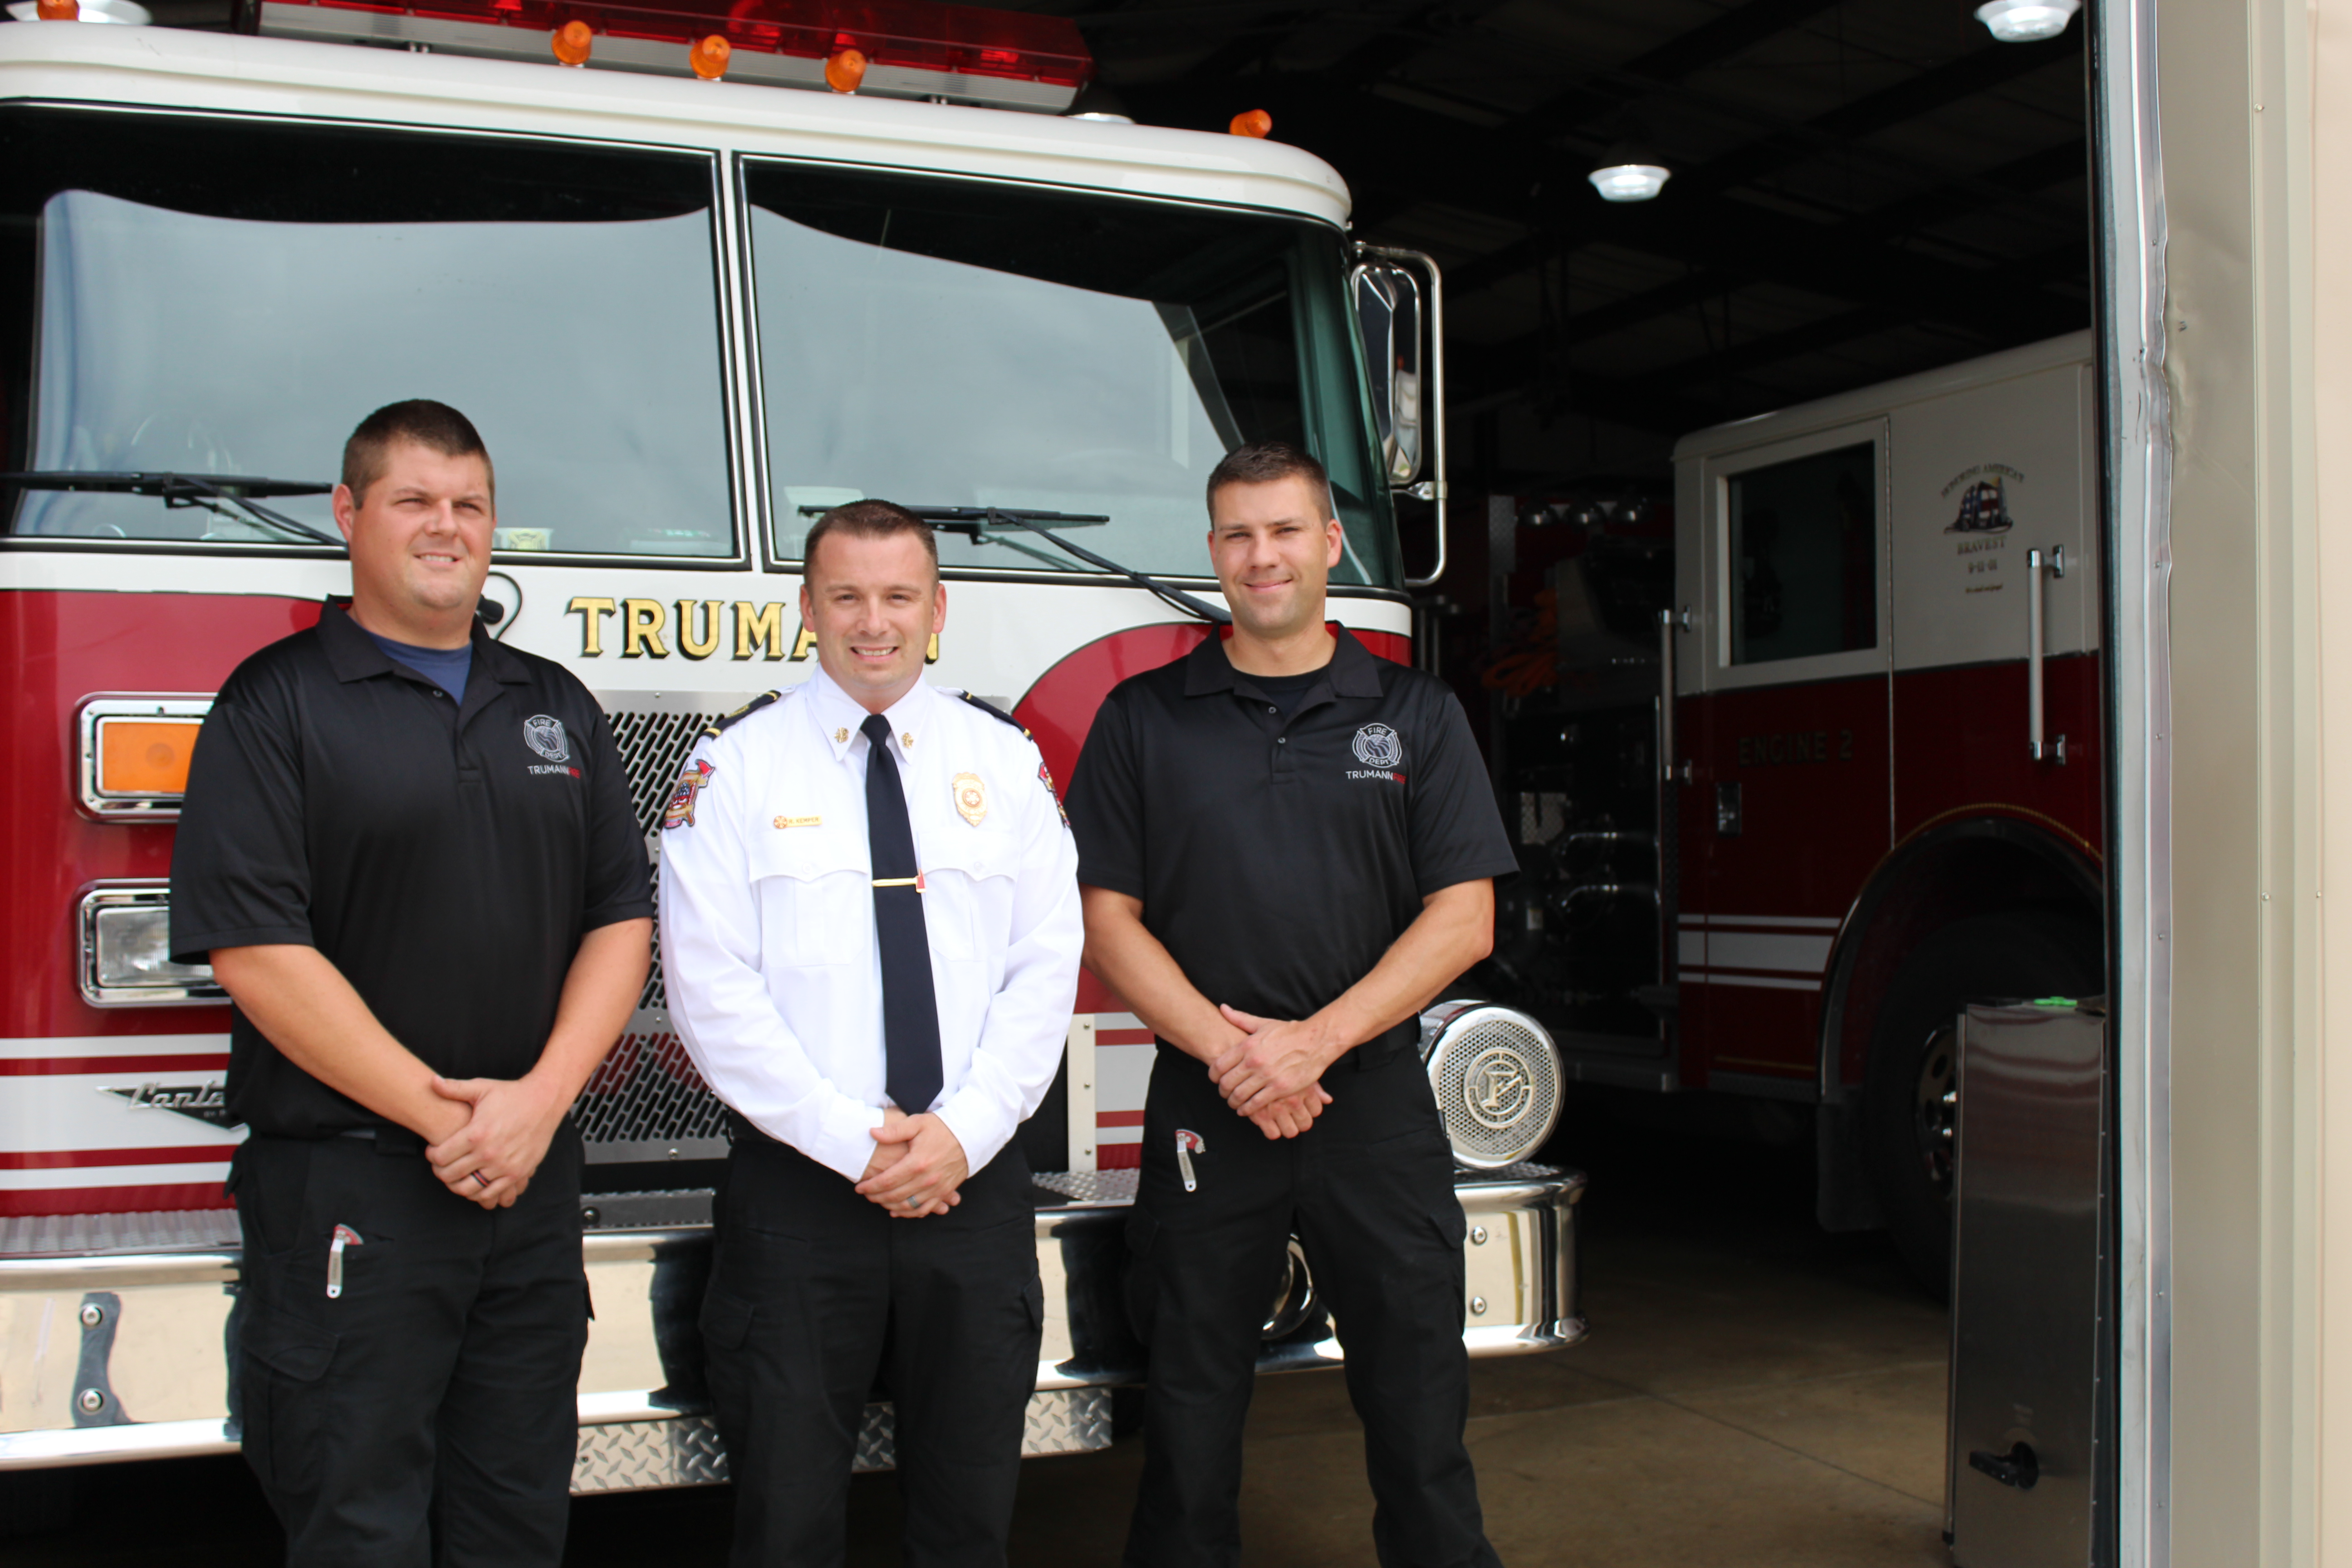 Picture of three Trumann firemen posing in front of the pumper truck